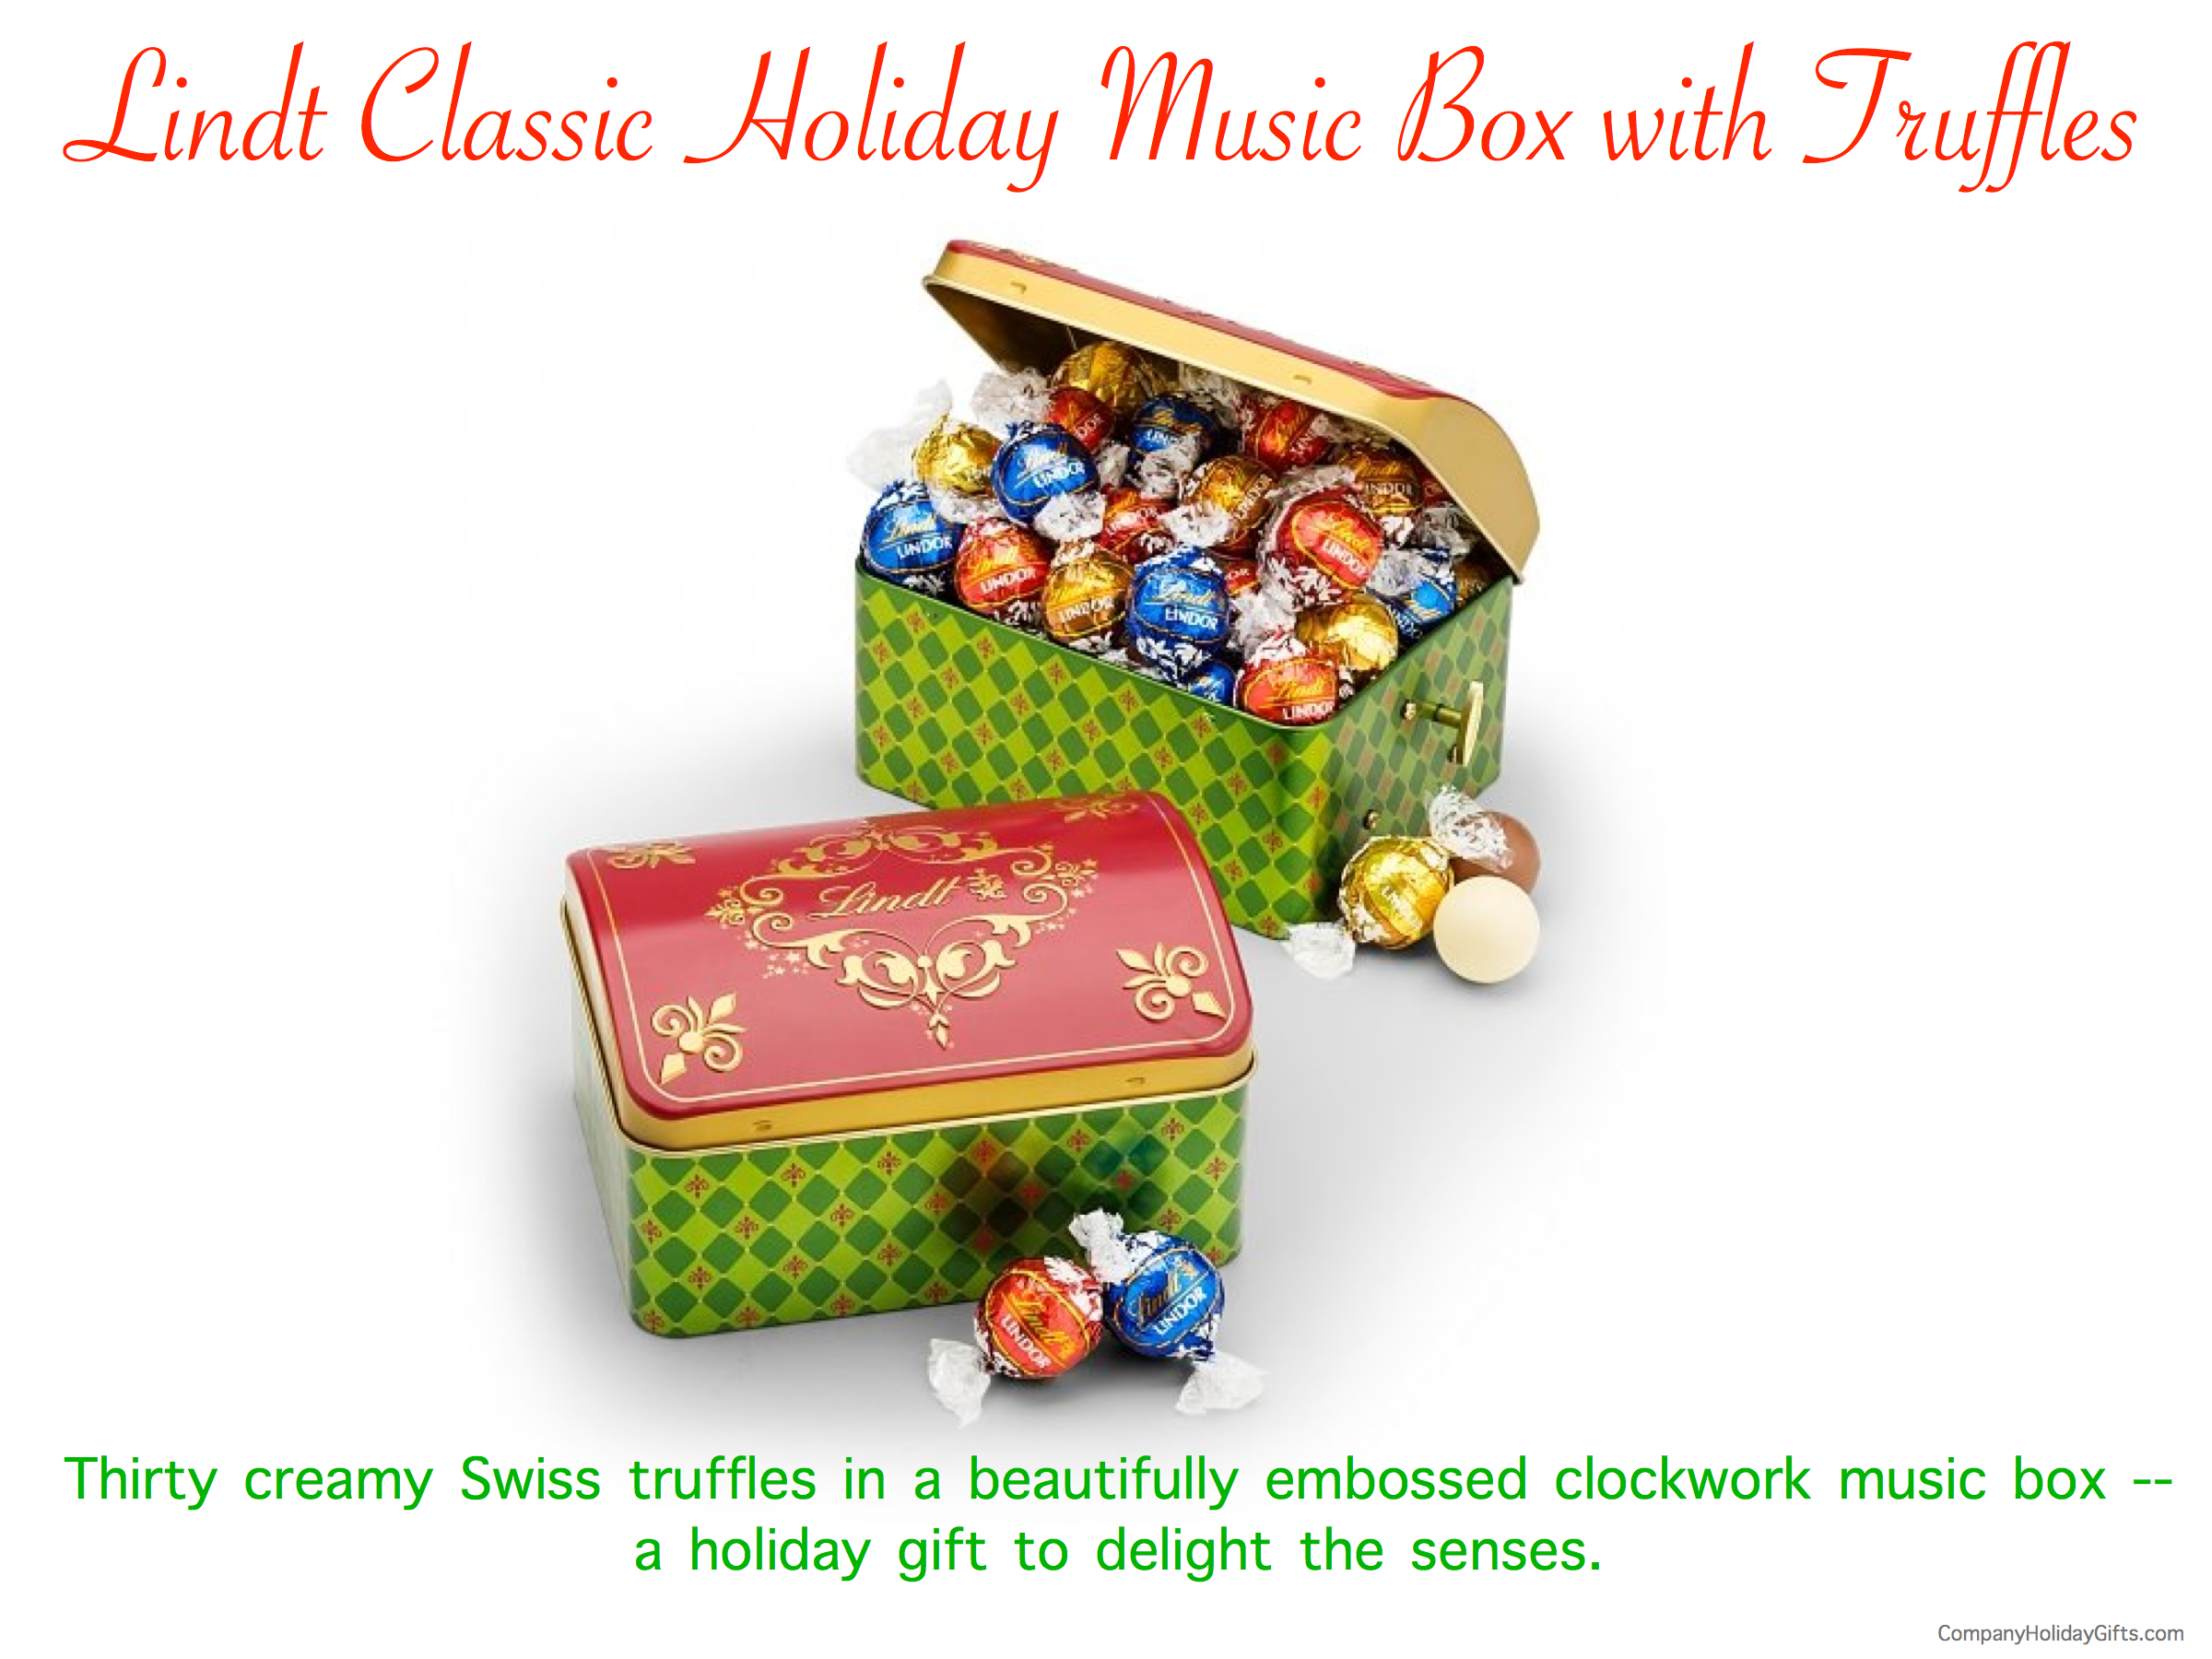 Lindt Classic Holiday Music Box with Truffles